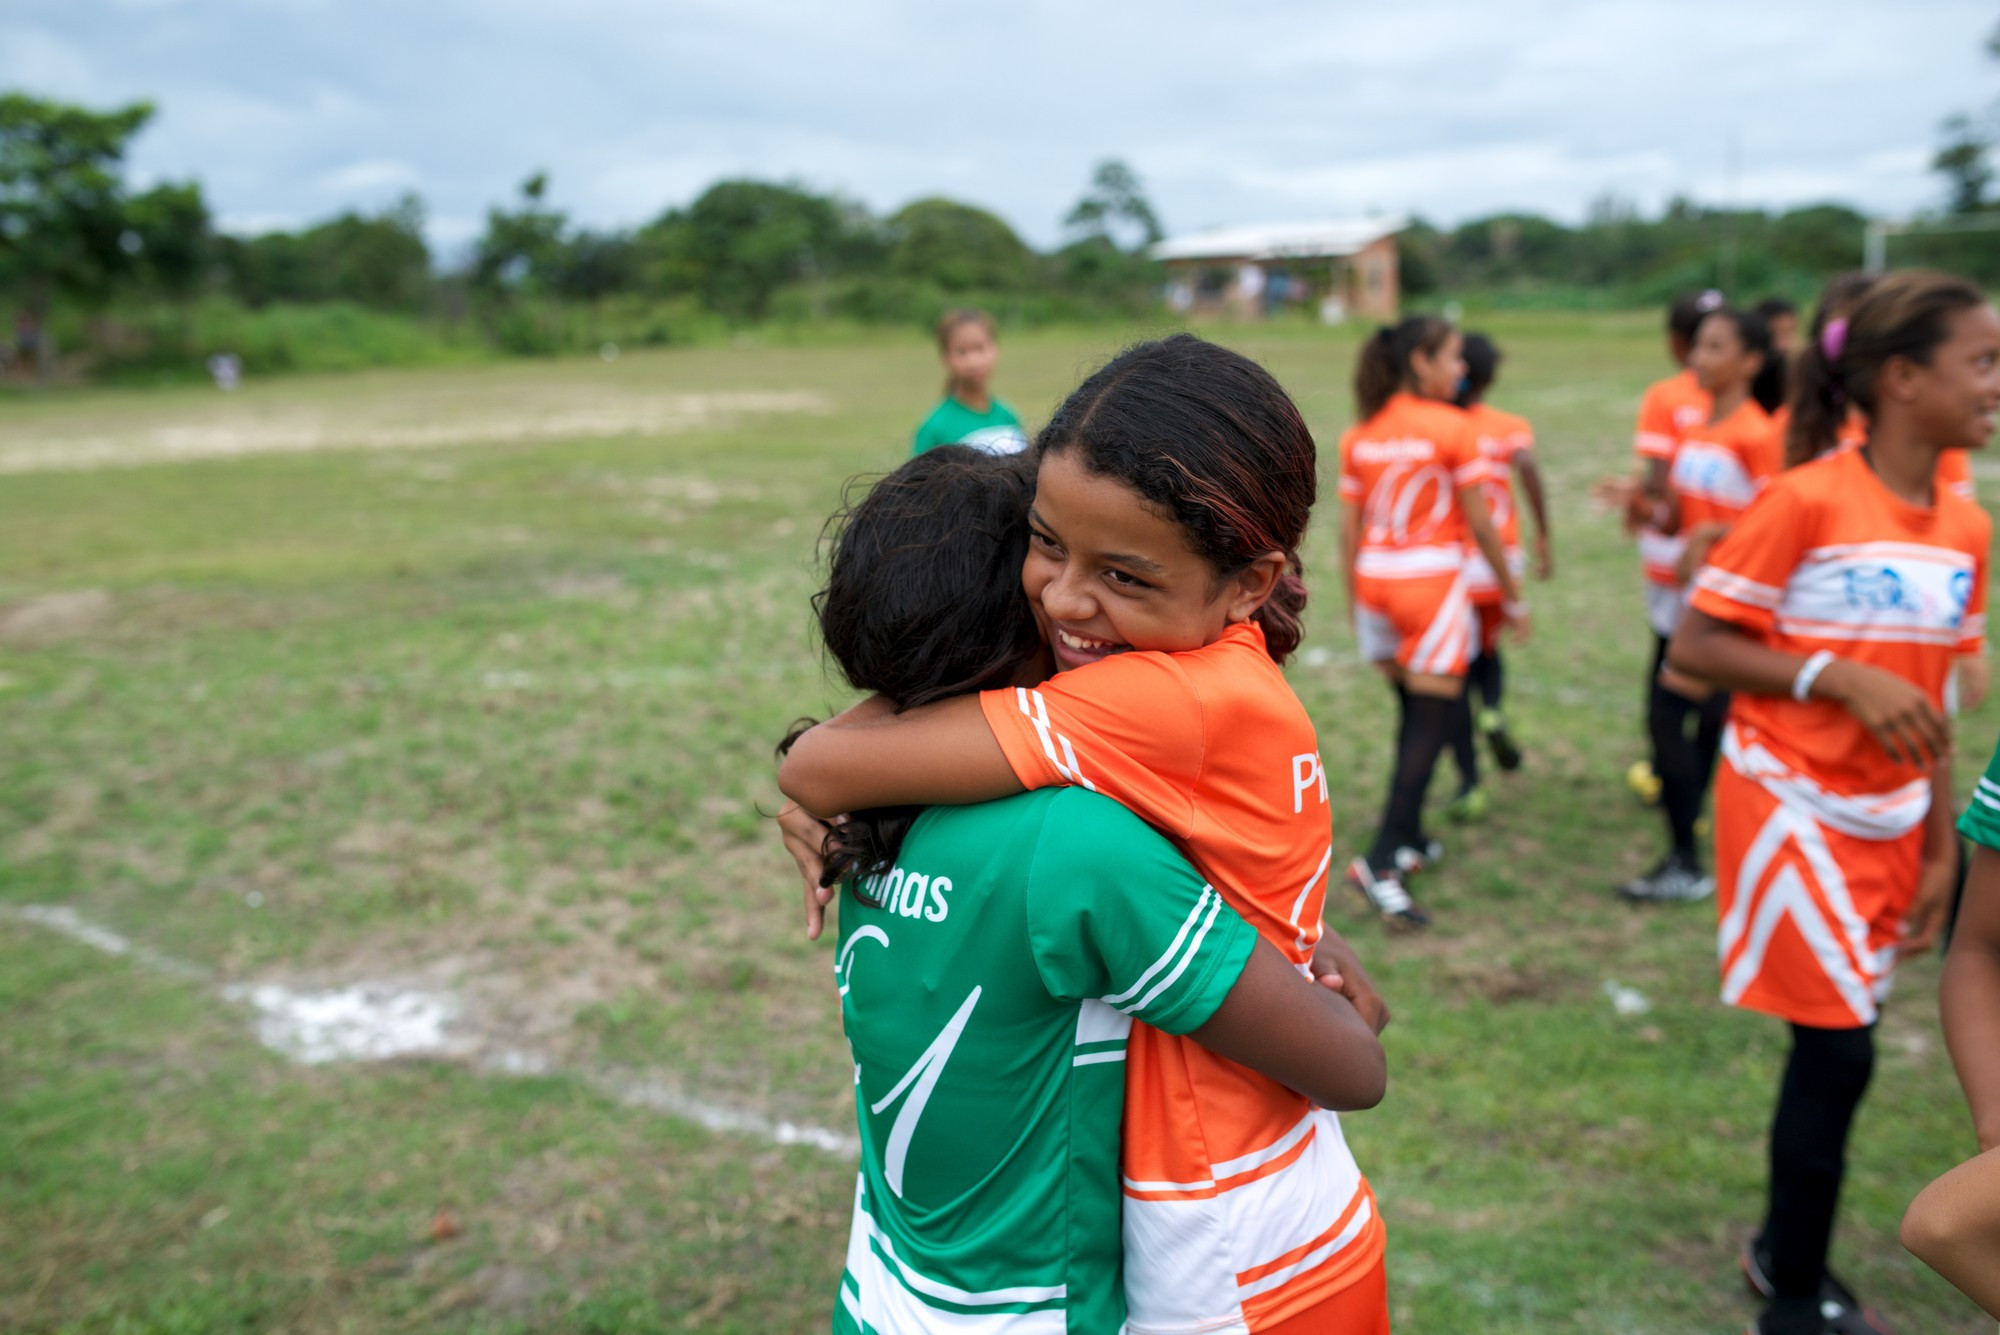 Girls playing football have a hug at half time